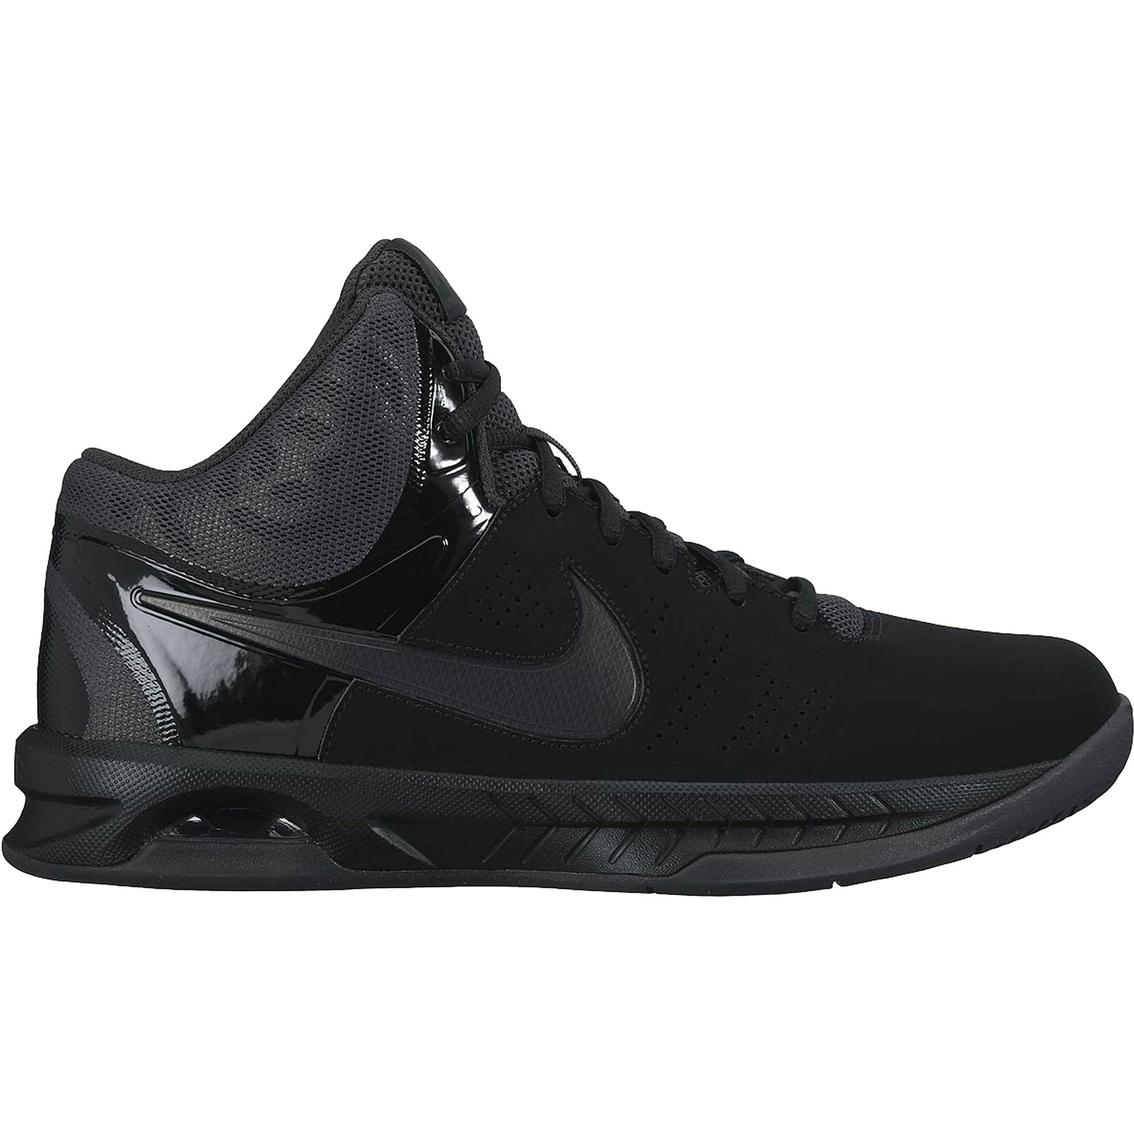 8be529c76611 Nike Men s Air Visi Pro Vi Nubuck Basketball Shoes